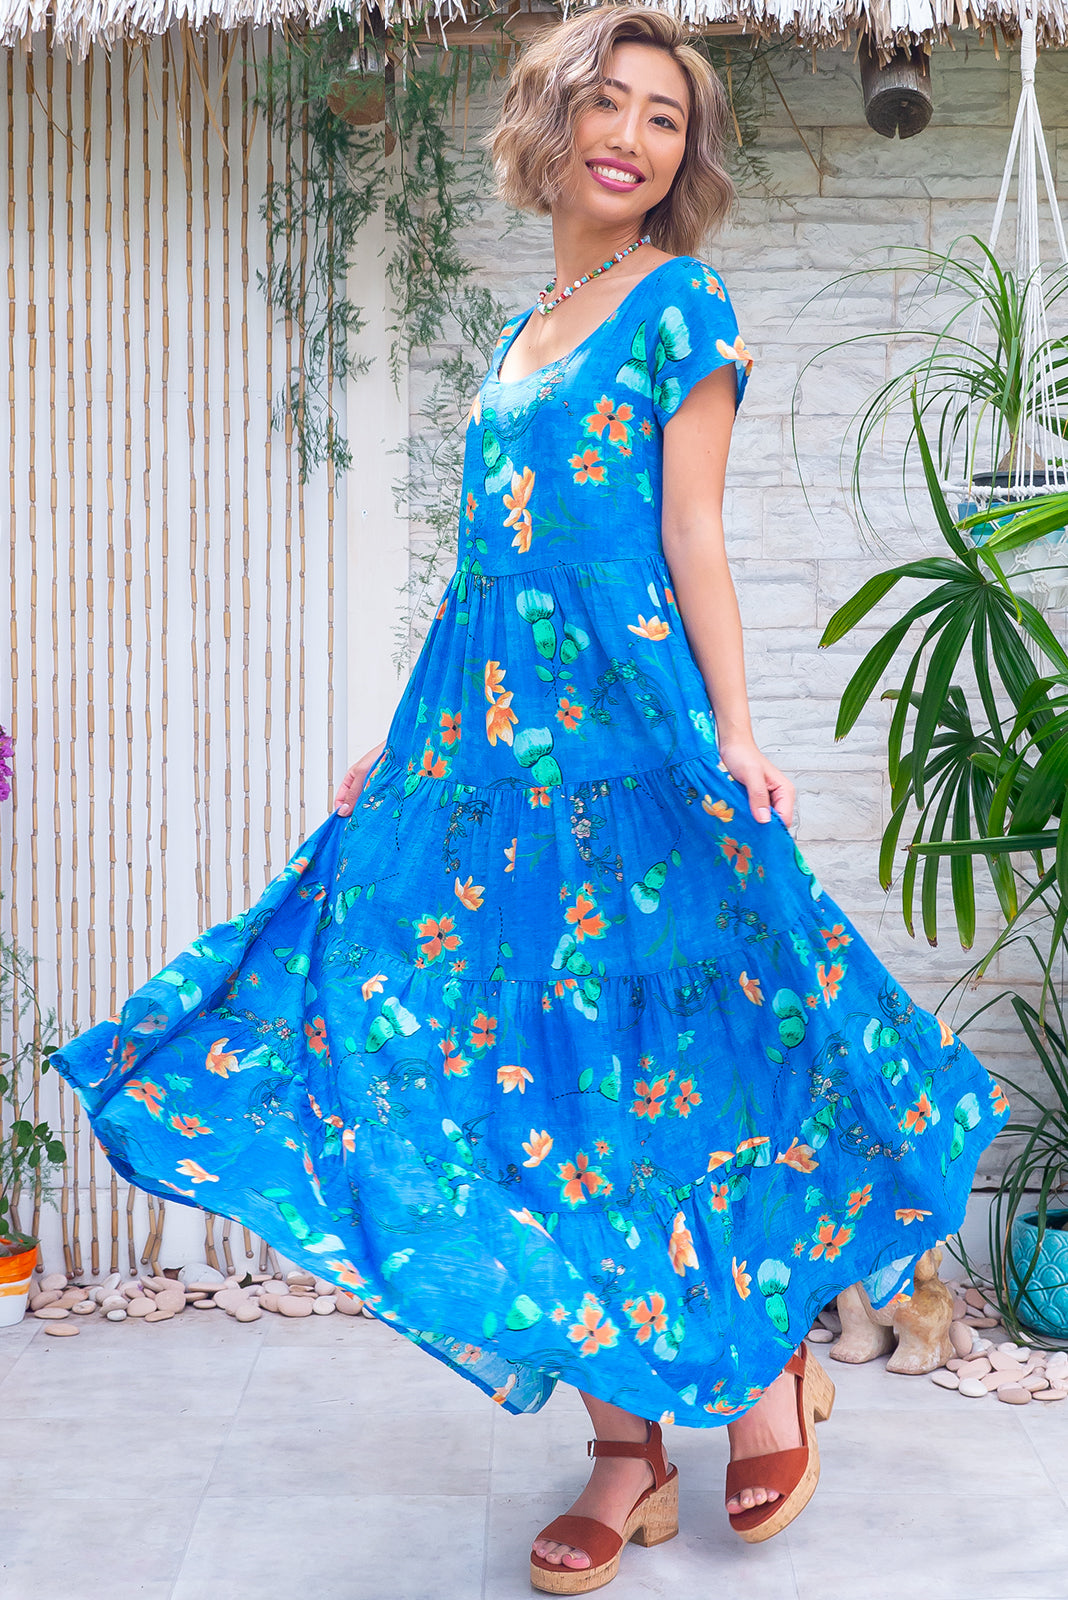 The Lucky Lulu Sapphire Maxi Dress features scooped neckline, cap sleeves, side pockets, wide tiered skirt and 100% cotton in azure blue wash effect base with orange and green floral motif.